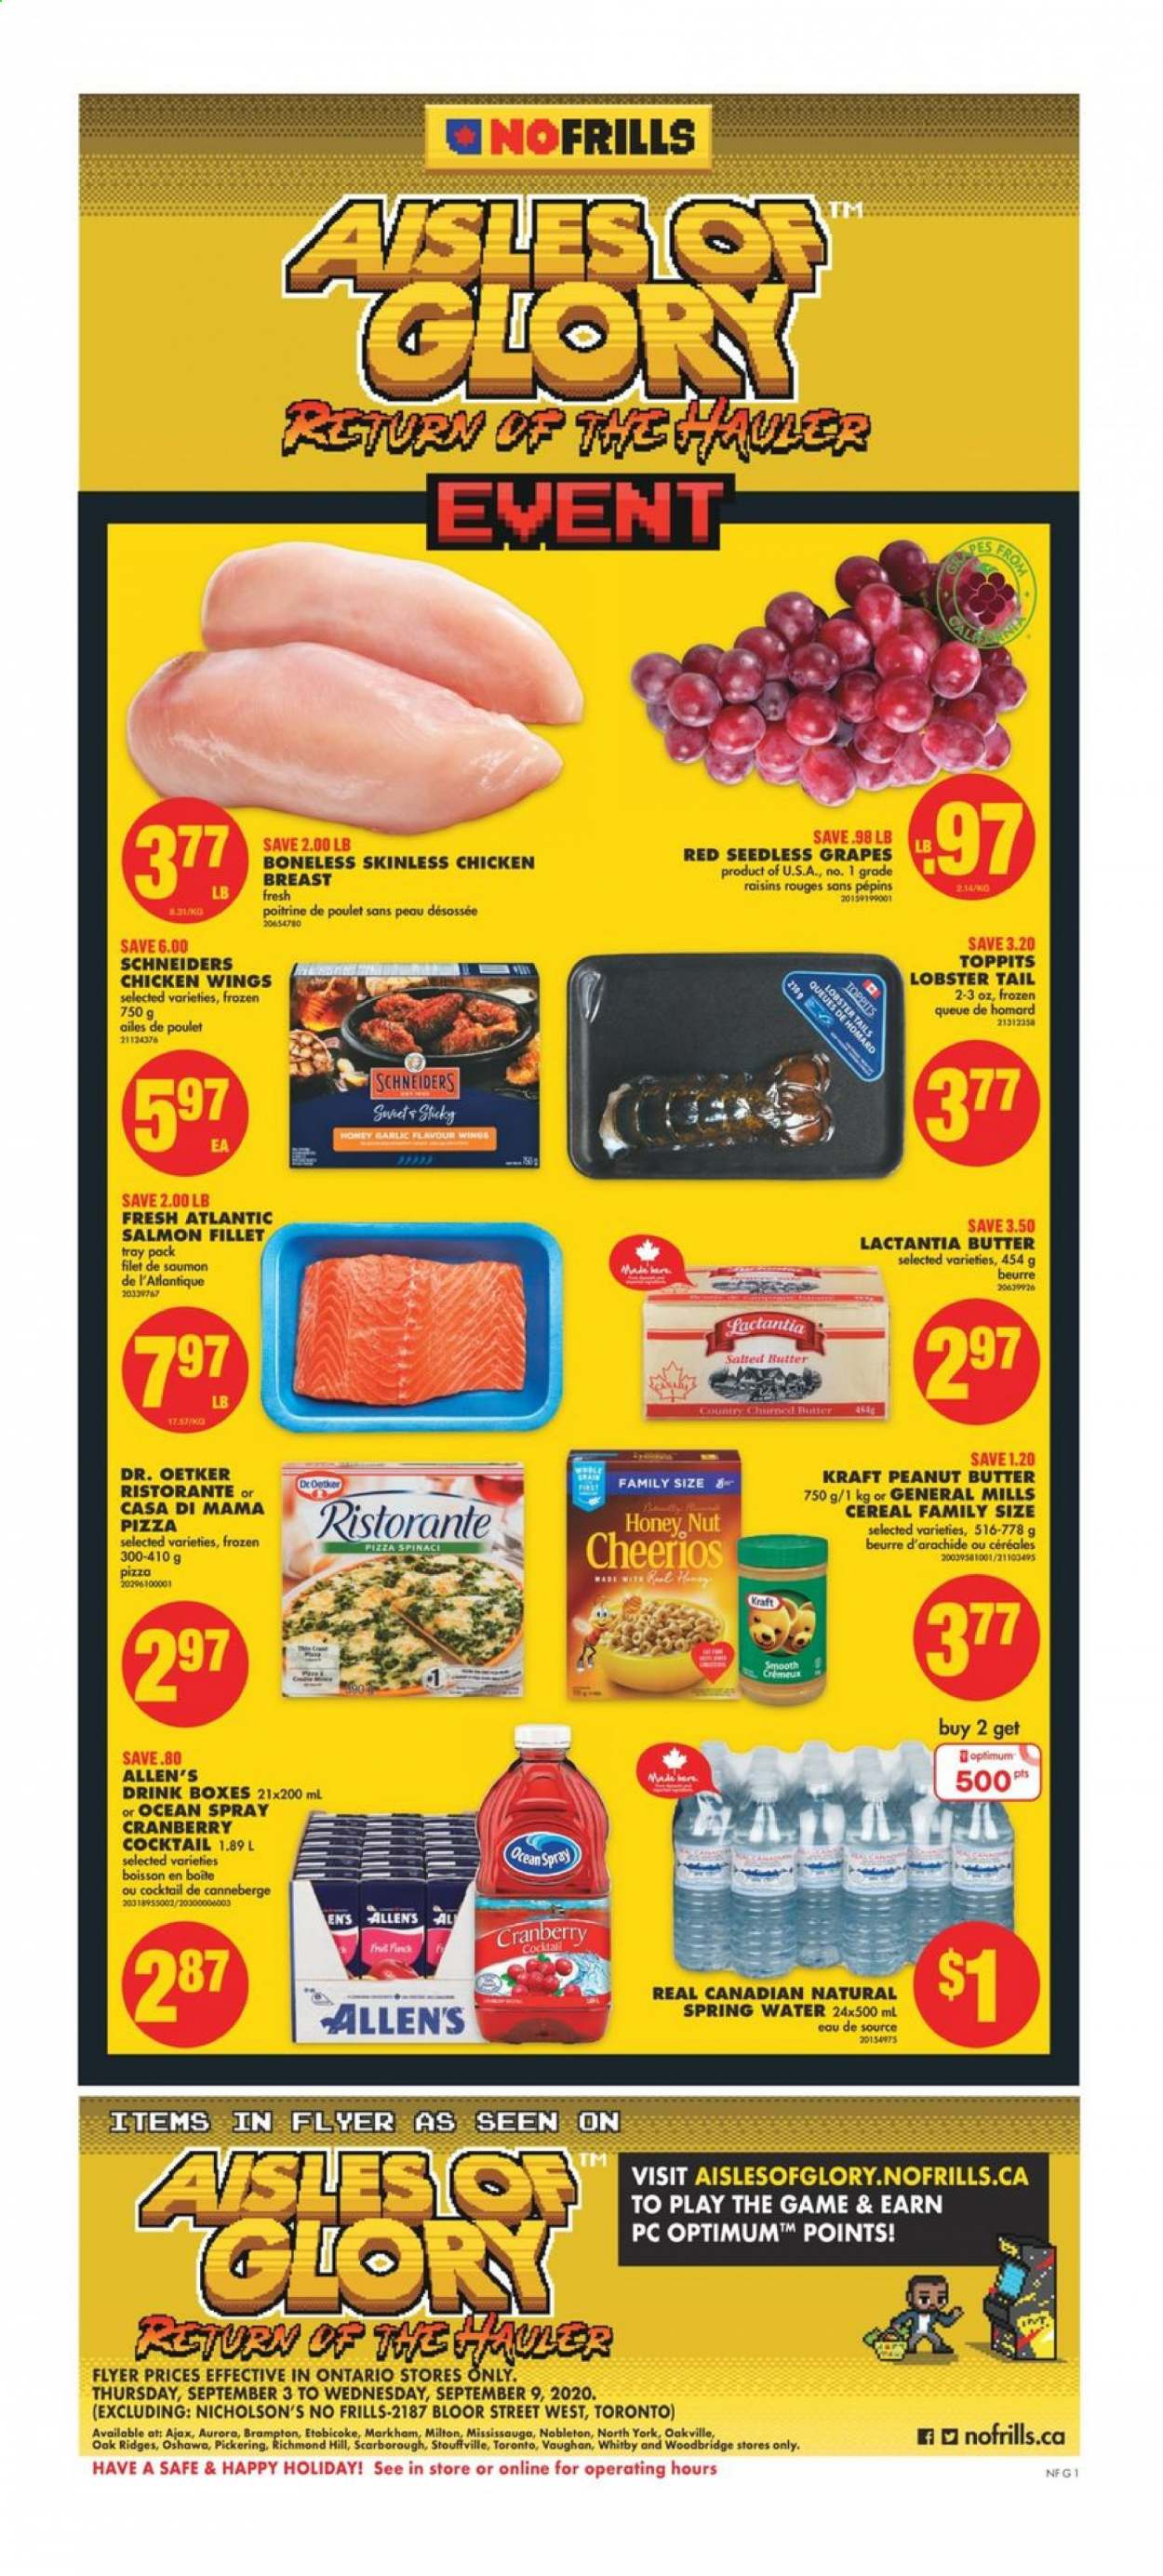 Circulaire No Frills - 03 Septembre 2020 - 09 Septembre 2020 - Produits soldés - butter, cereals, frozen, garlic, gra, grapes, lobster, lobster tails, raisins, safe, salmon, salmon fillet, seedless grapes, spring water, tray, honey, pizza, cheerios, chicken, chicken breast, peanut butter, peanuts, chicken wings, game, smooth, cereal, poulet, saumon, beurre, beurre d'arachide, boisson, canneberge, eau, homard, madère, spring, box, drink, wings, cranberry, lobster tail. Page 1.